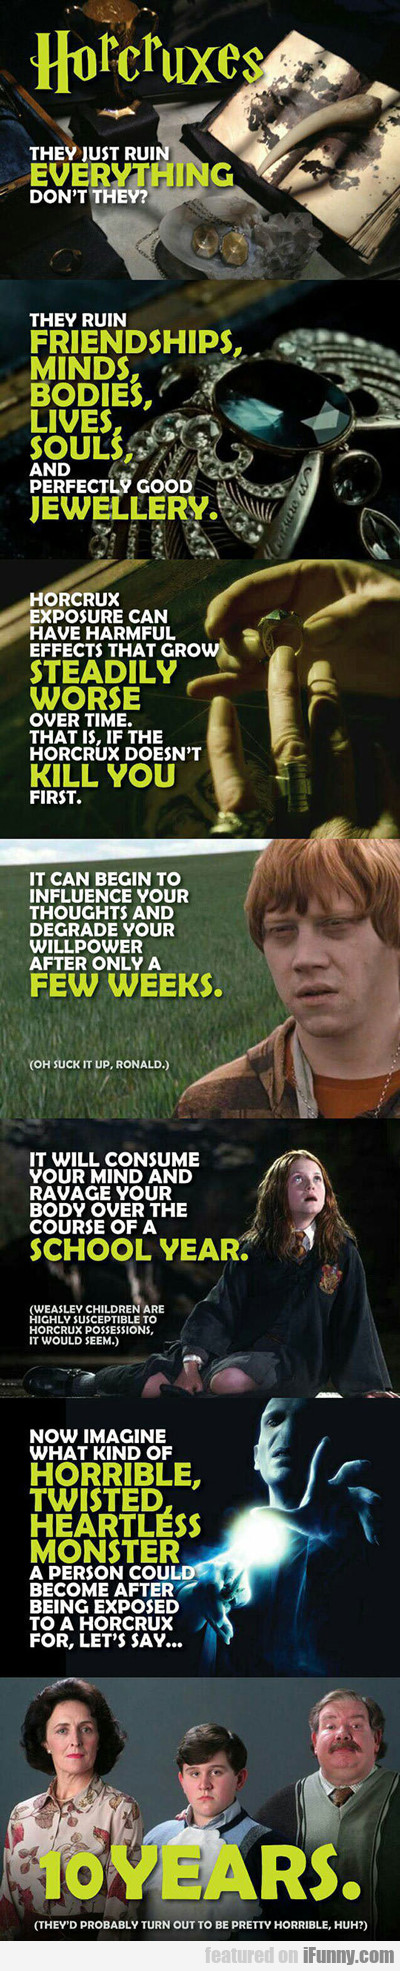 Horcruxes ruin everything...